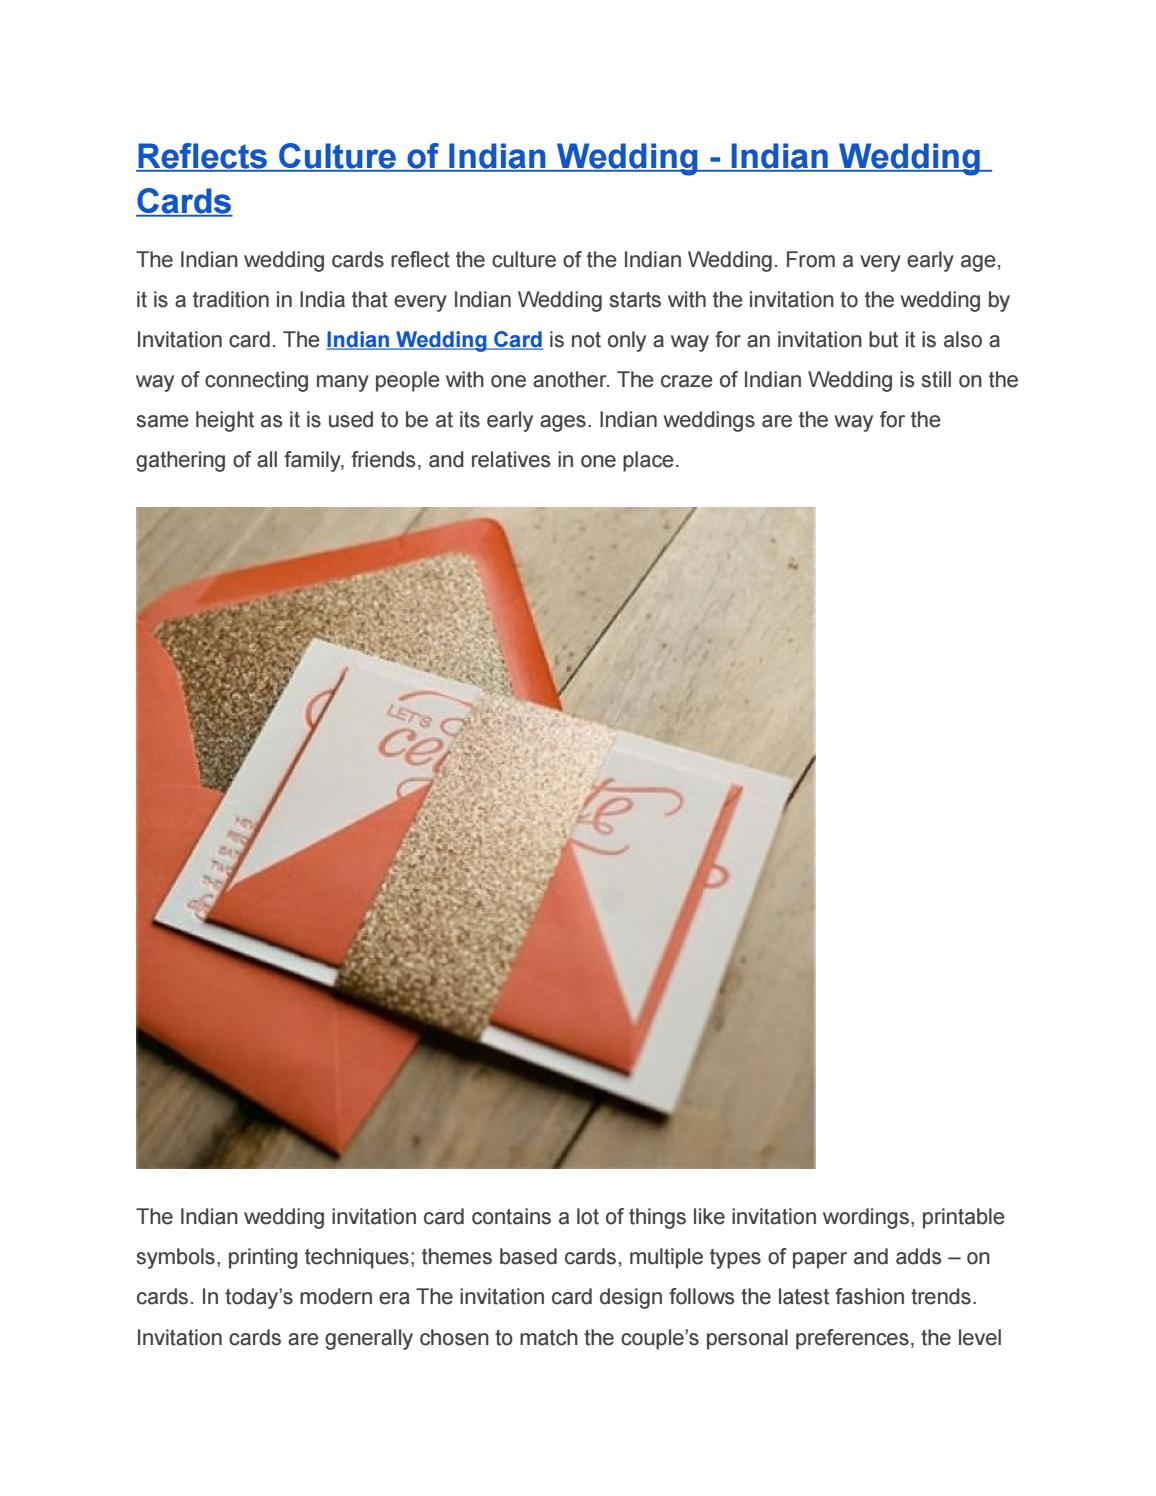 Reflects Culture Of Indian Wedding Indian Wedding Cards By Theweddingcardsonline Issuu